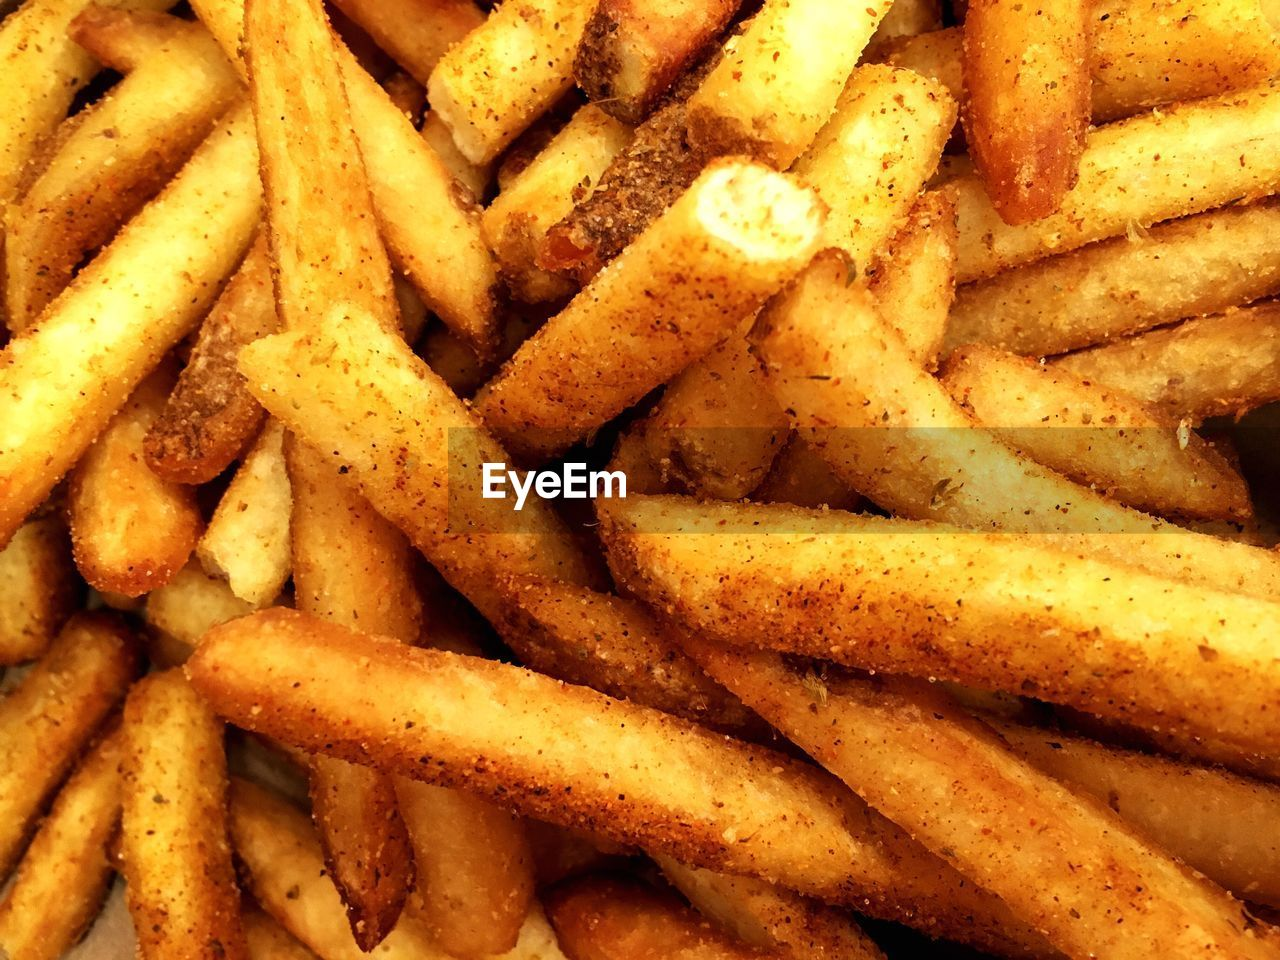 french fries, prepared potato, unhealthy eating, food and drink, food, fried, backgrounds, full frame, fast food, snack, ready-to-eat, deep fried, take out food, close-up, no people, freshness, indoors, comfort food